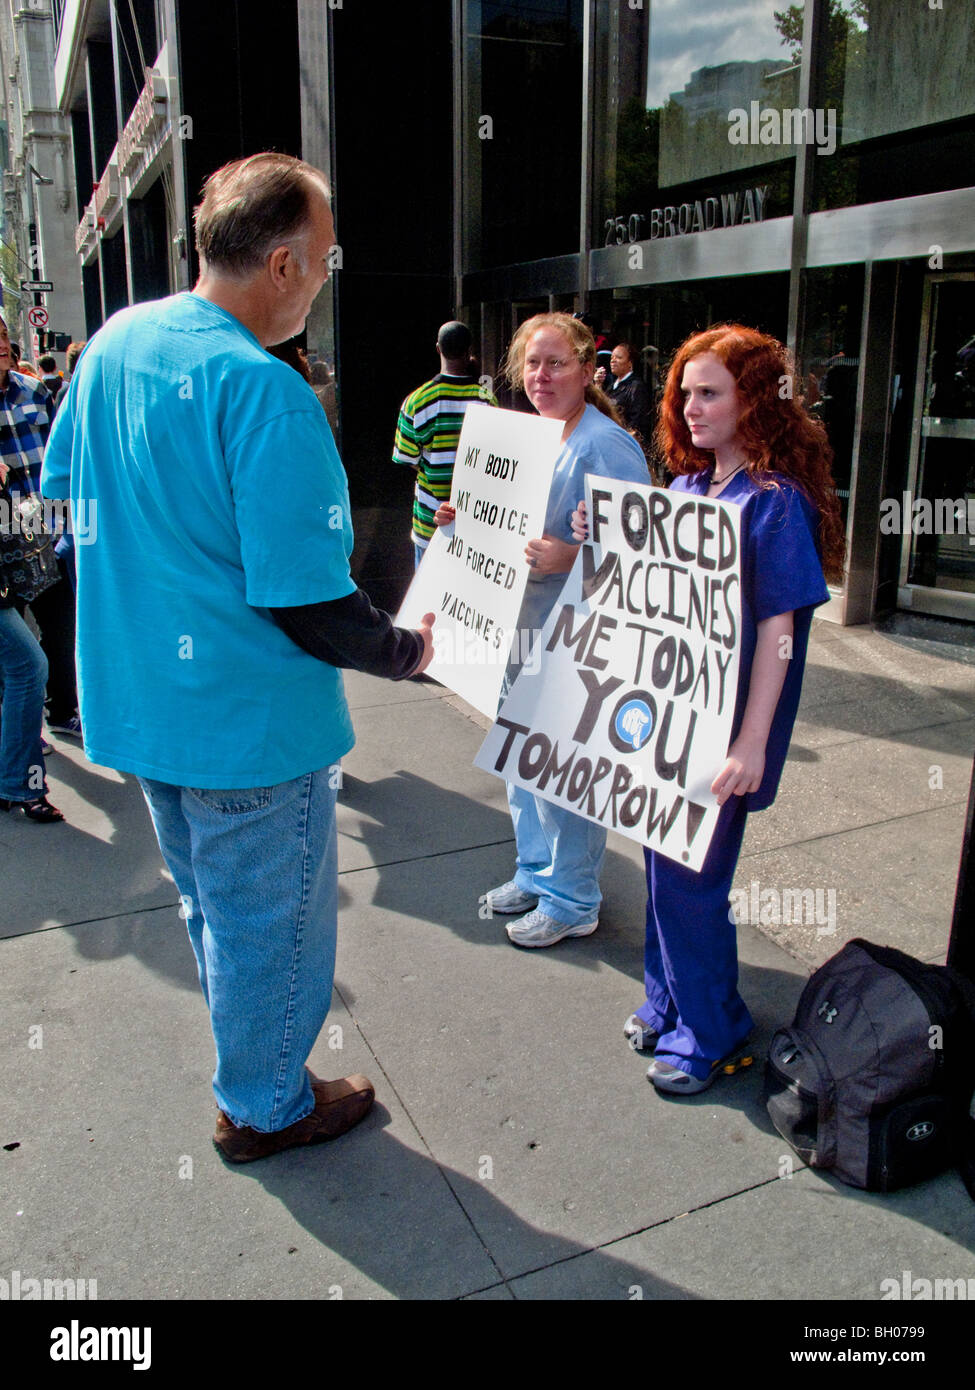 Health care workers at a NY City clinic hold a sidewalk protest against compulsory inoculations of H1N1 swine flu - Stock Image